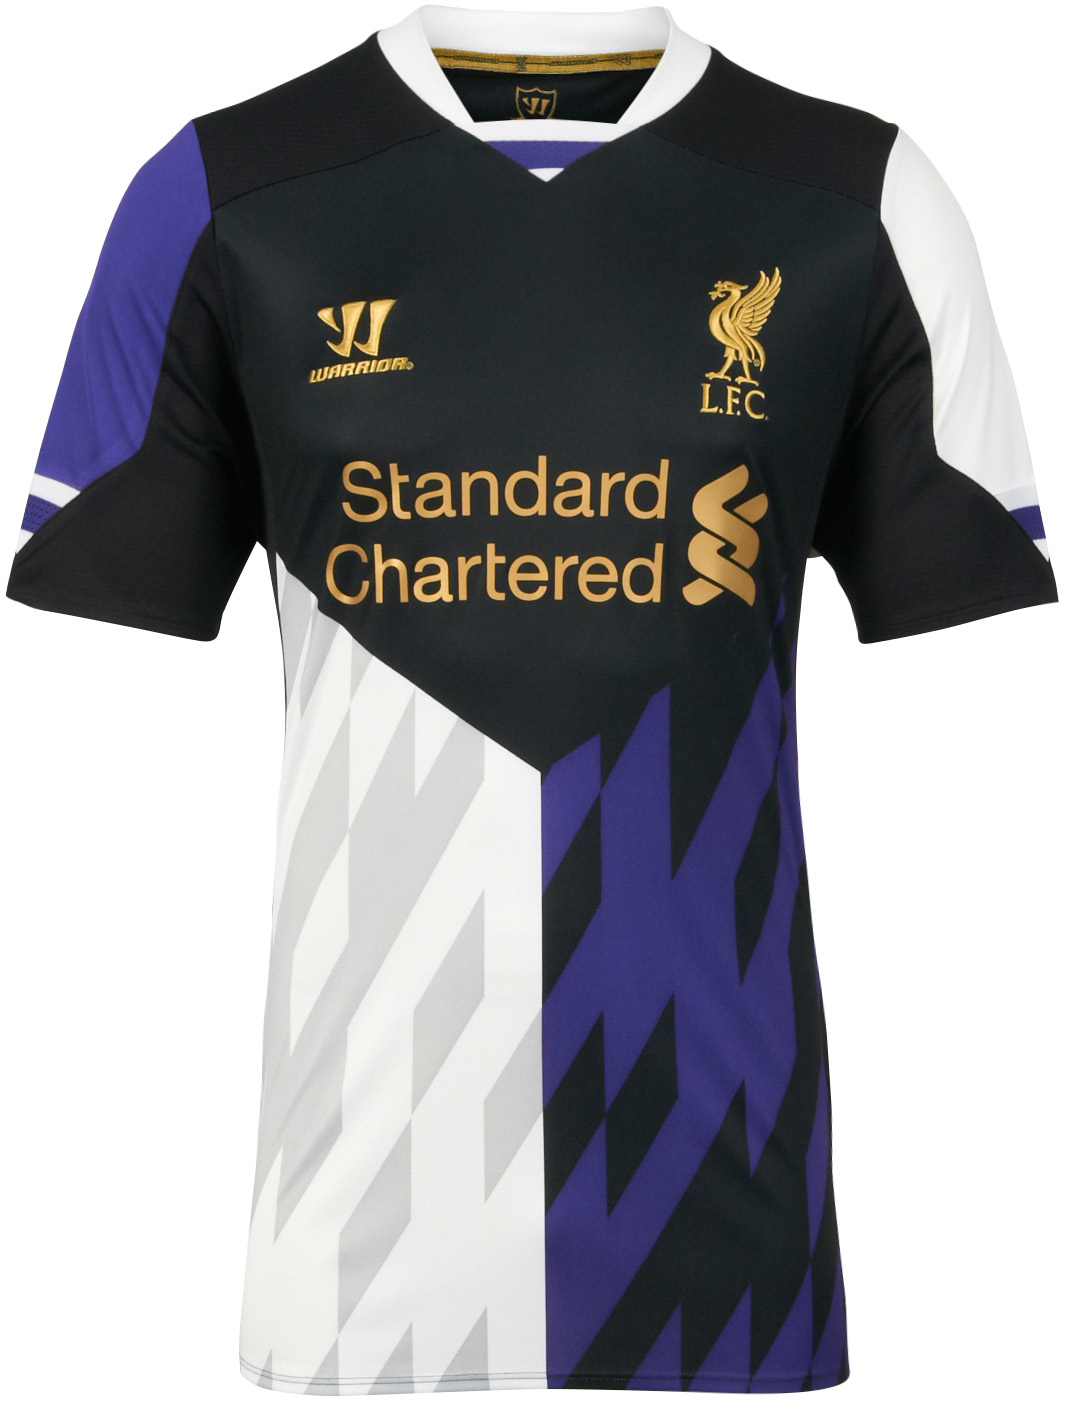 on sale 174f8 fdb91 Leaked Liverpool kits for next season look very classy ...